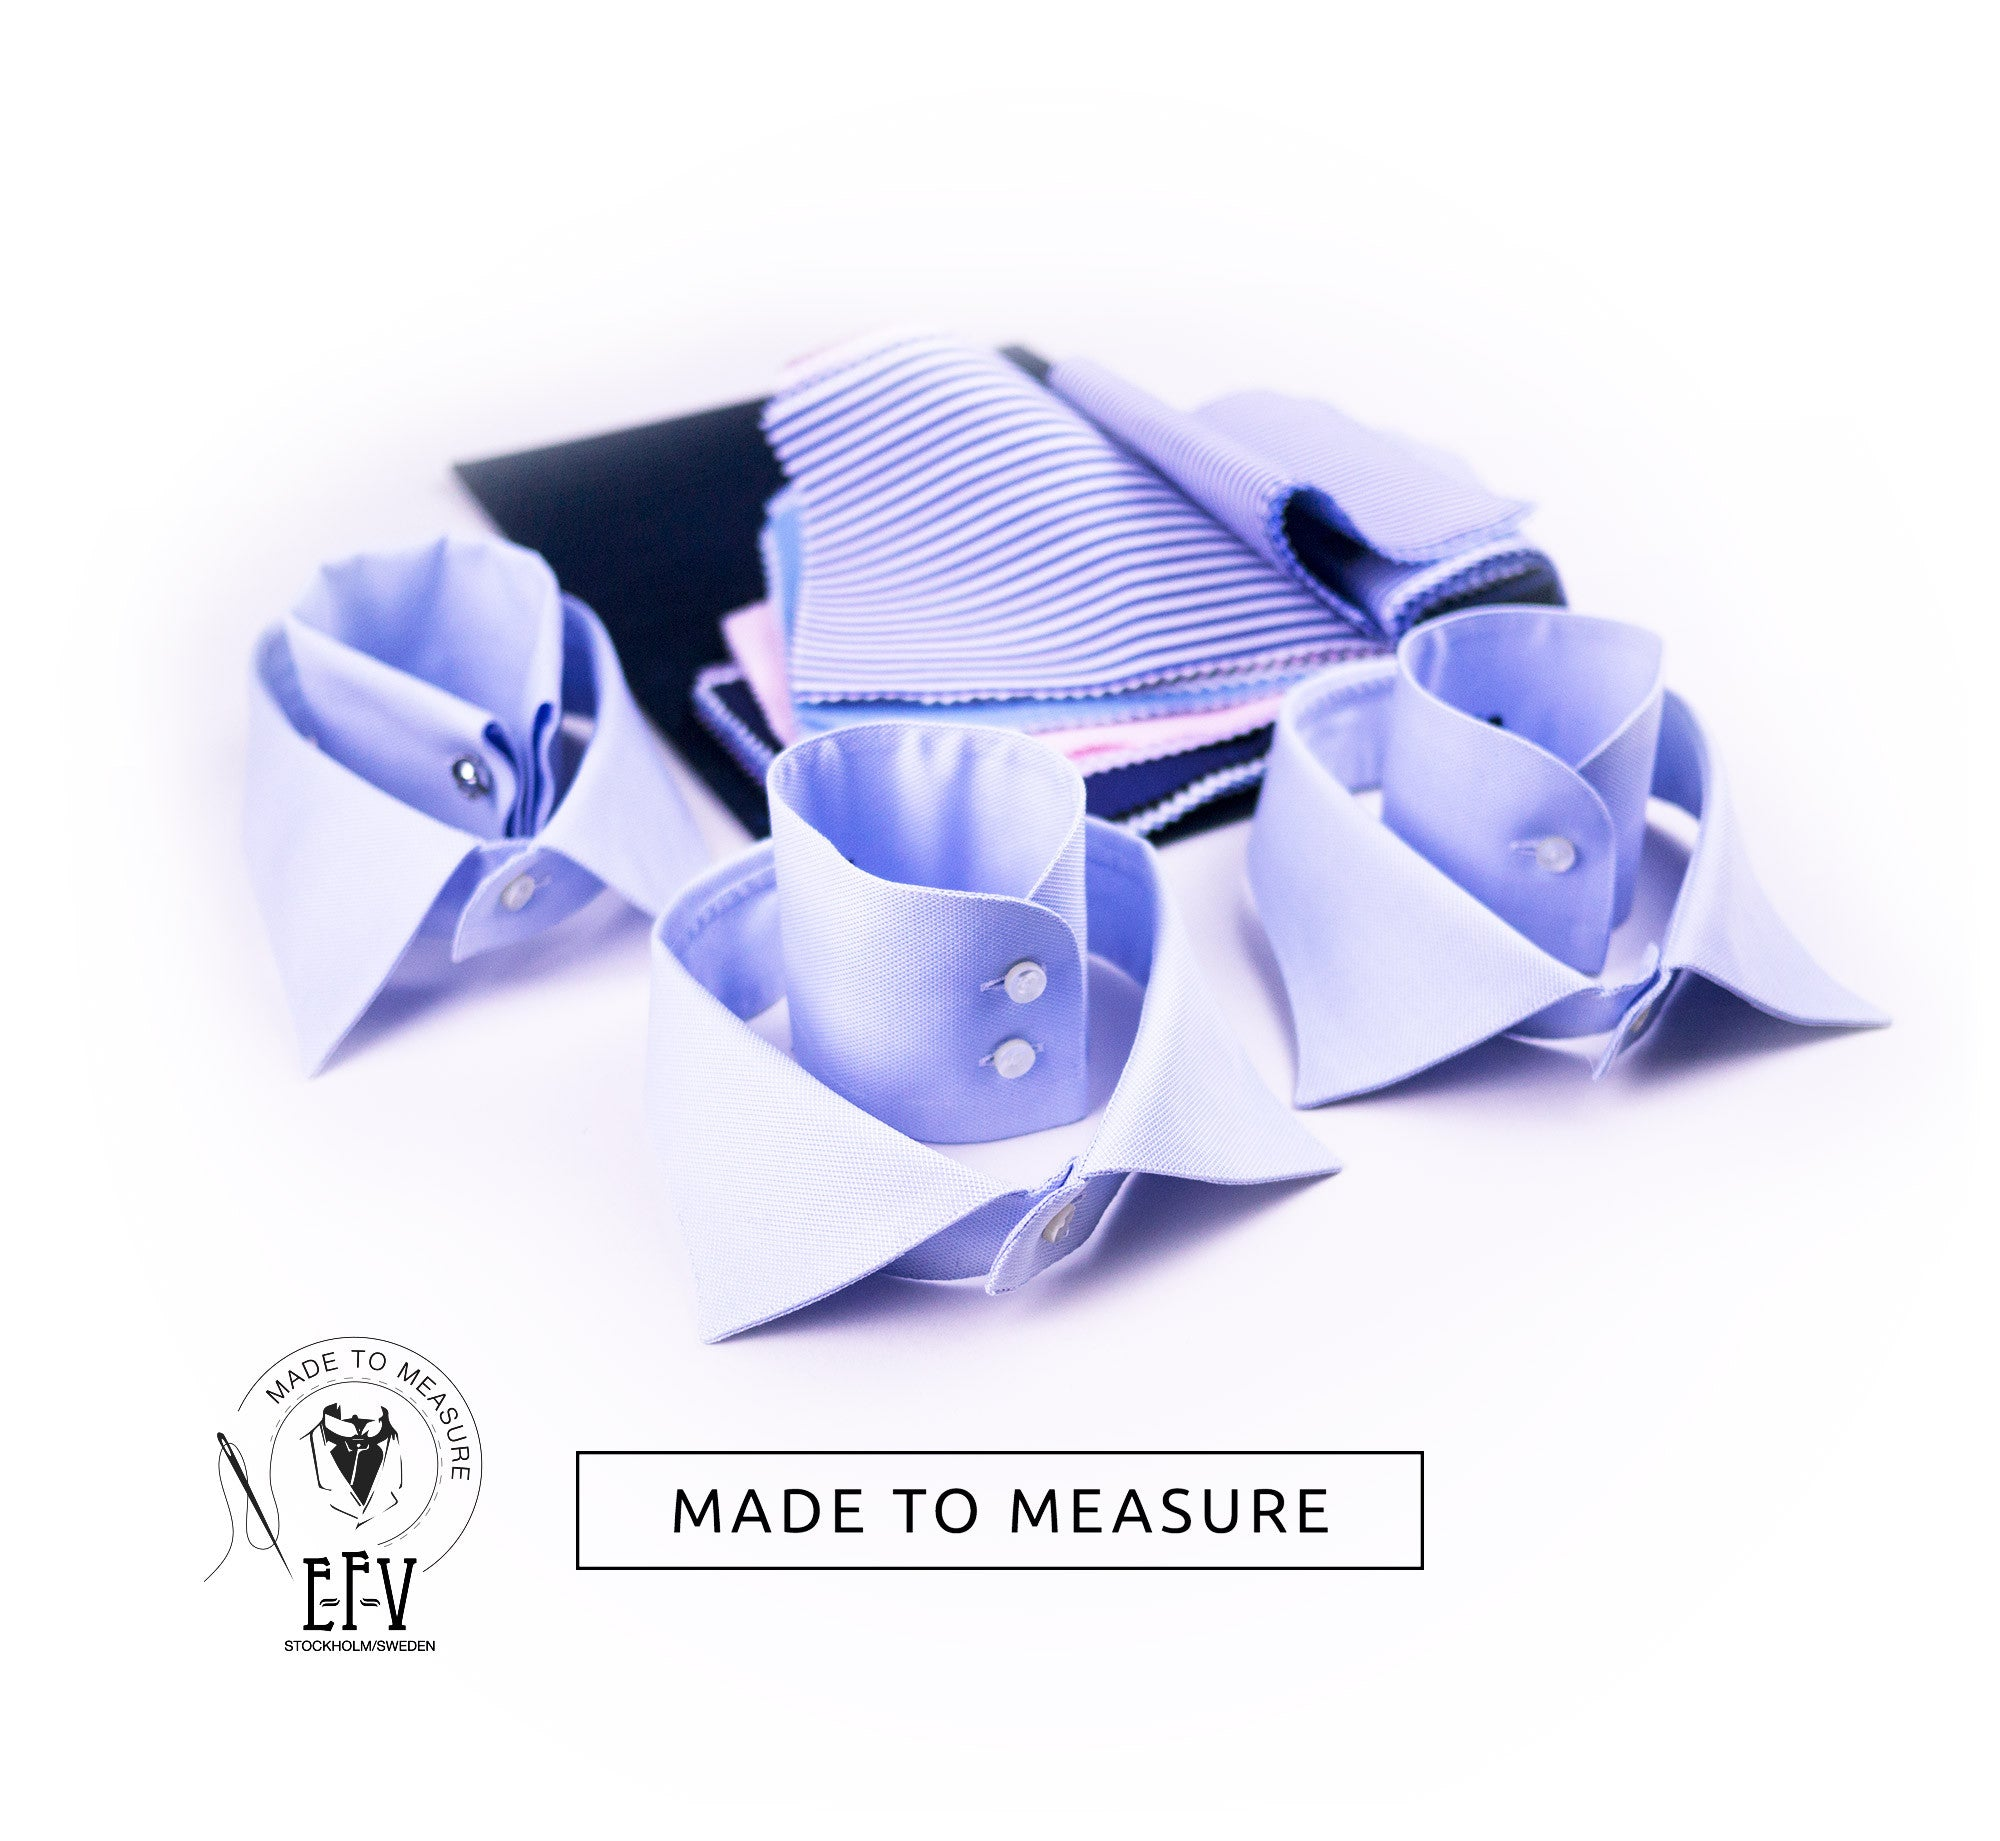 Giftcard - Made to Measure - Shirt  1, 3 or 5